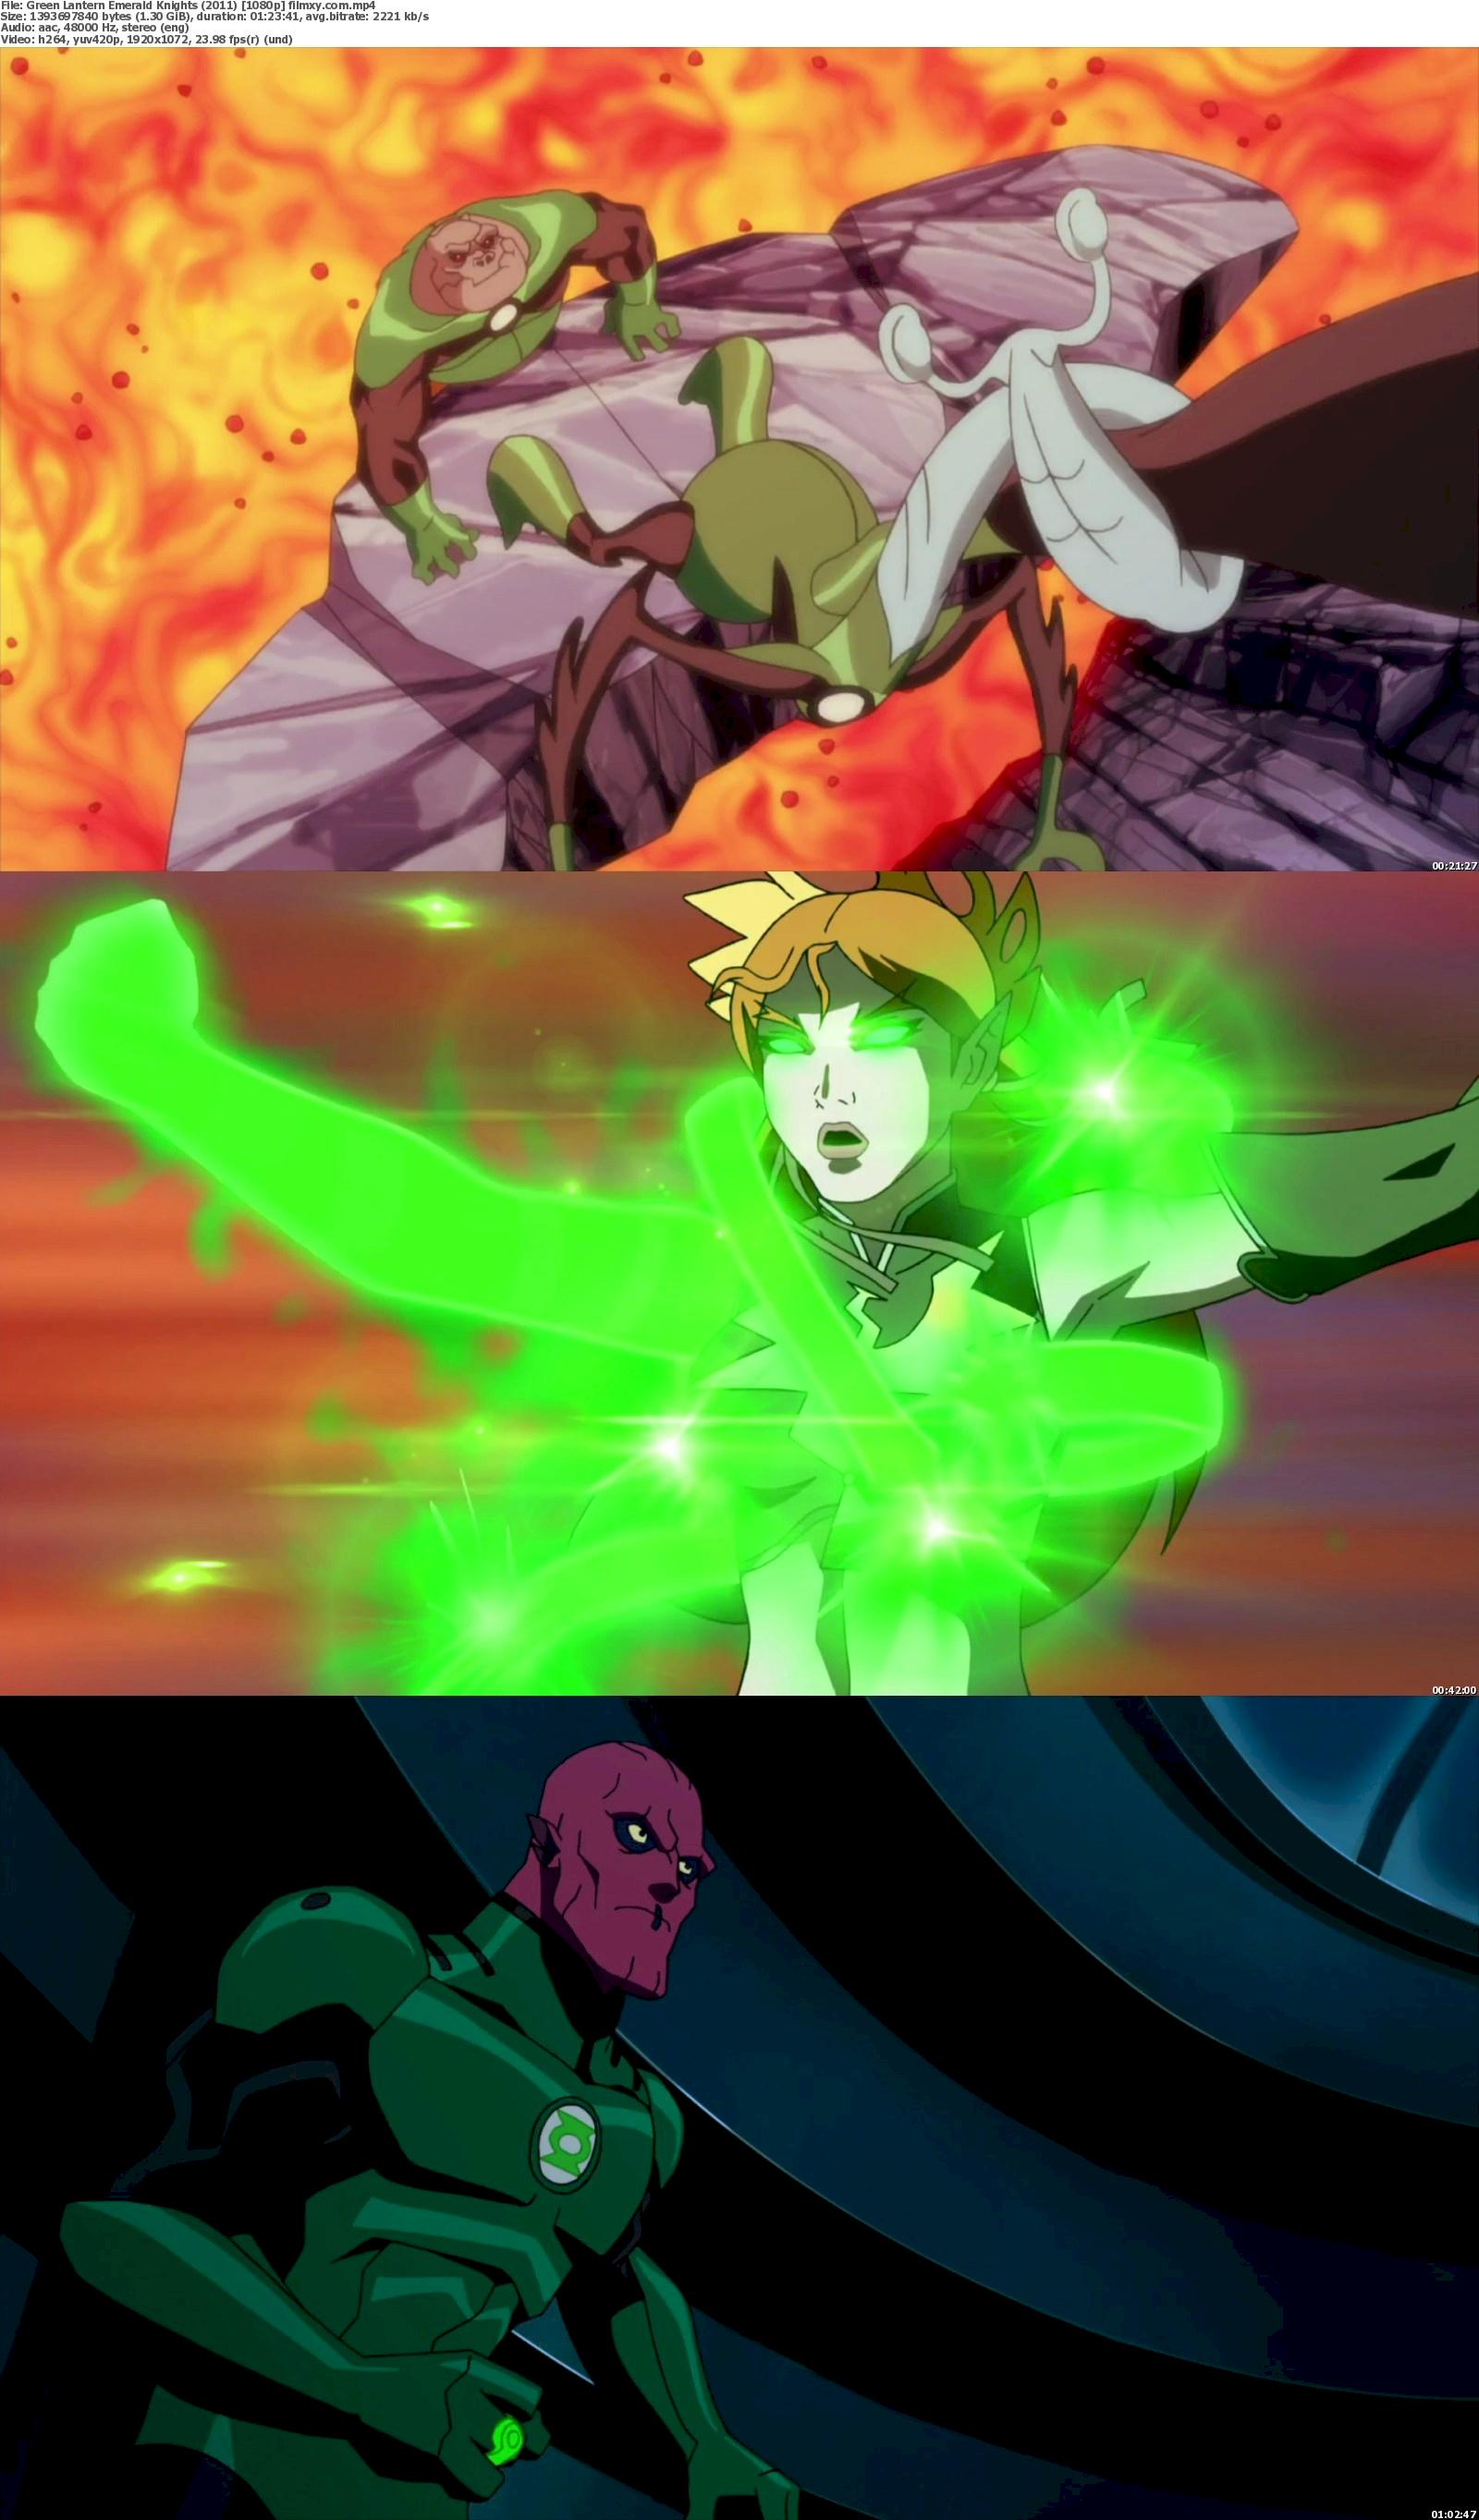 Green Lantern Emerald Knights (2011) 720p & 1080p Bluray Free Download 1080p Screenshot